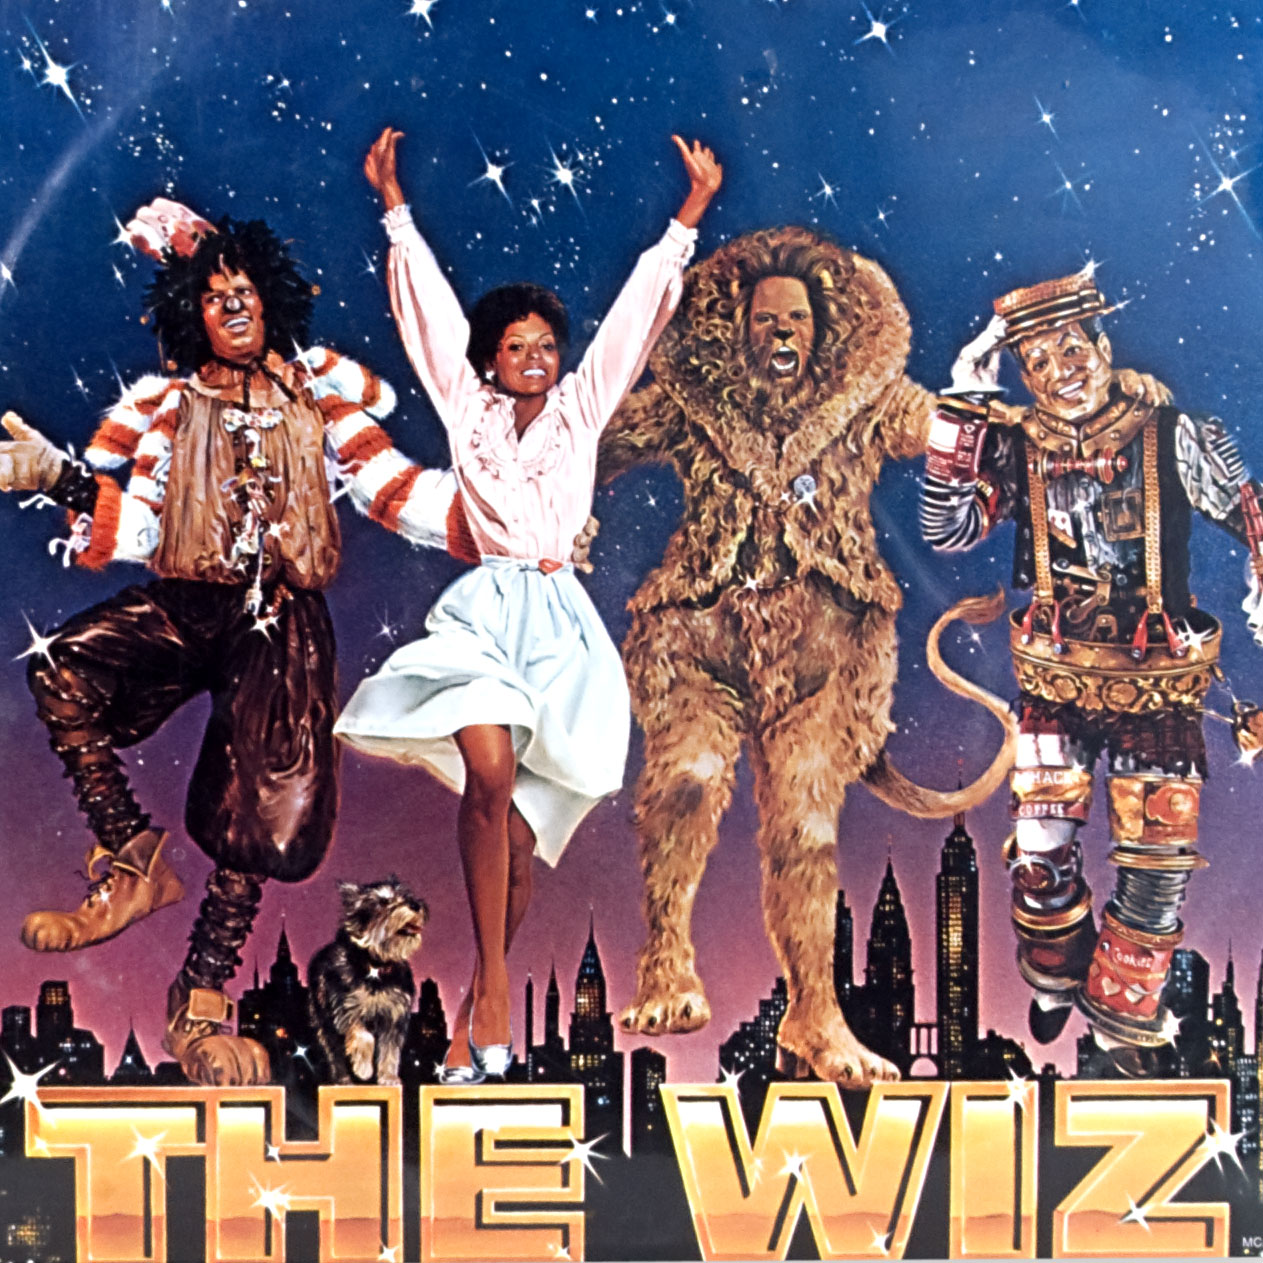 If you haven't seen the Wiz, stop what you're doing and correct this flaw in your life.